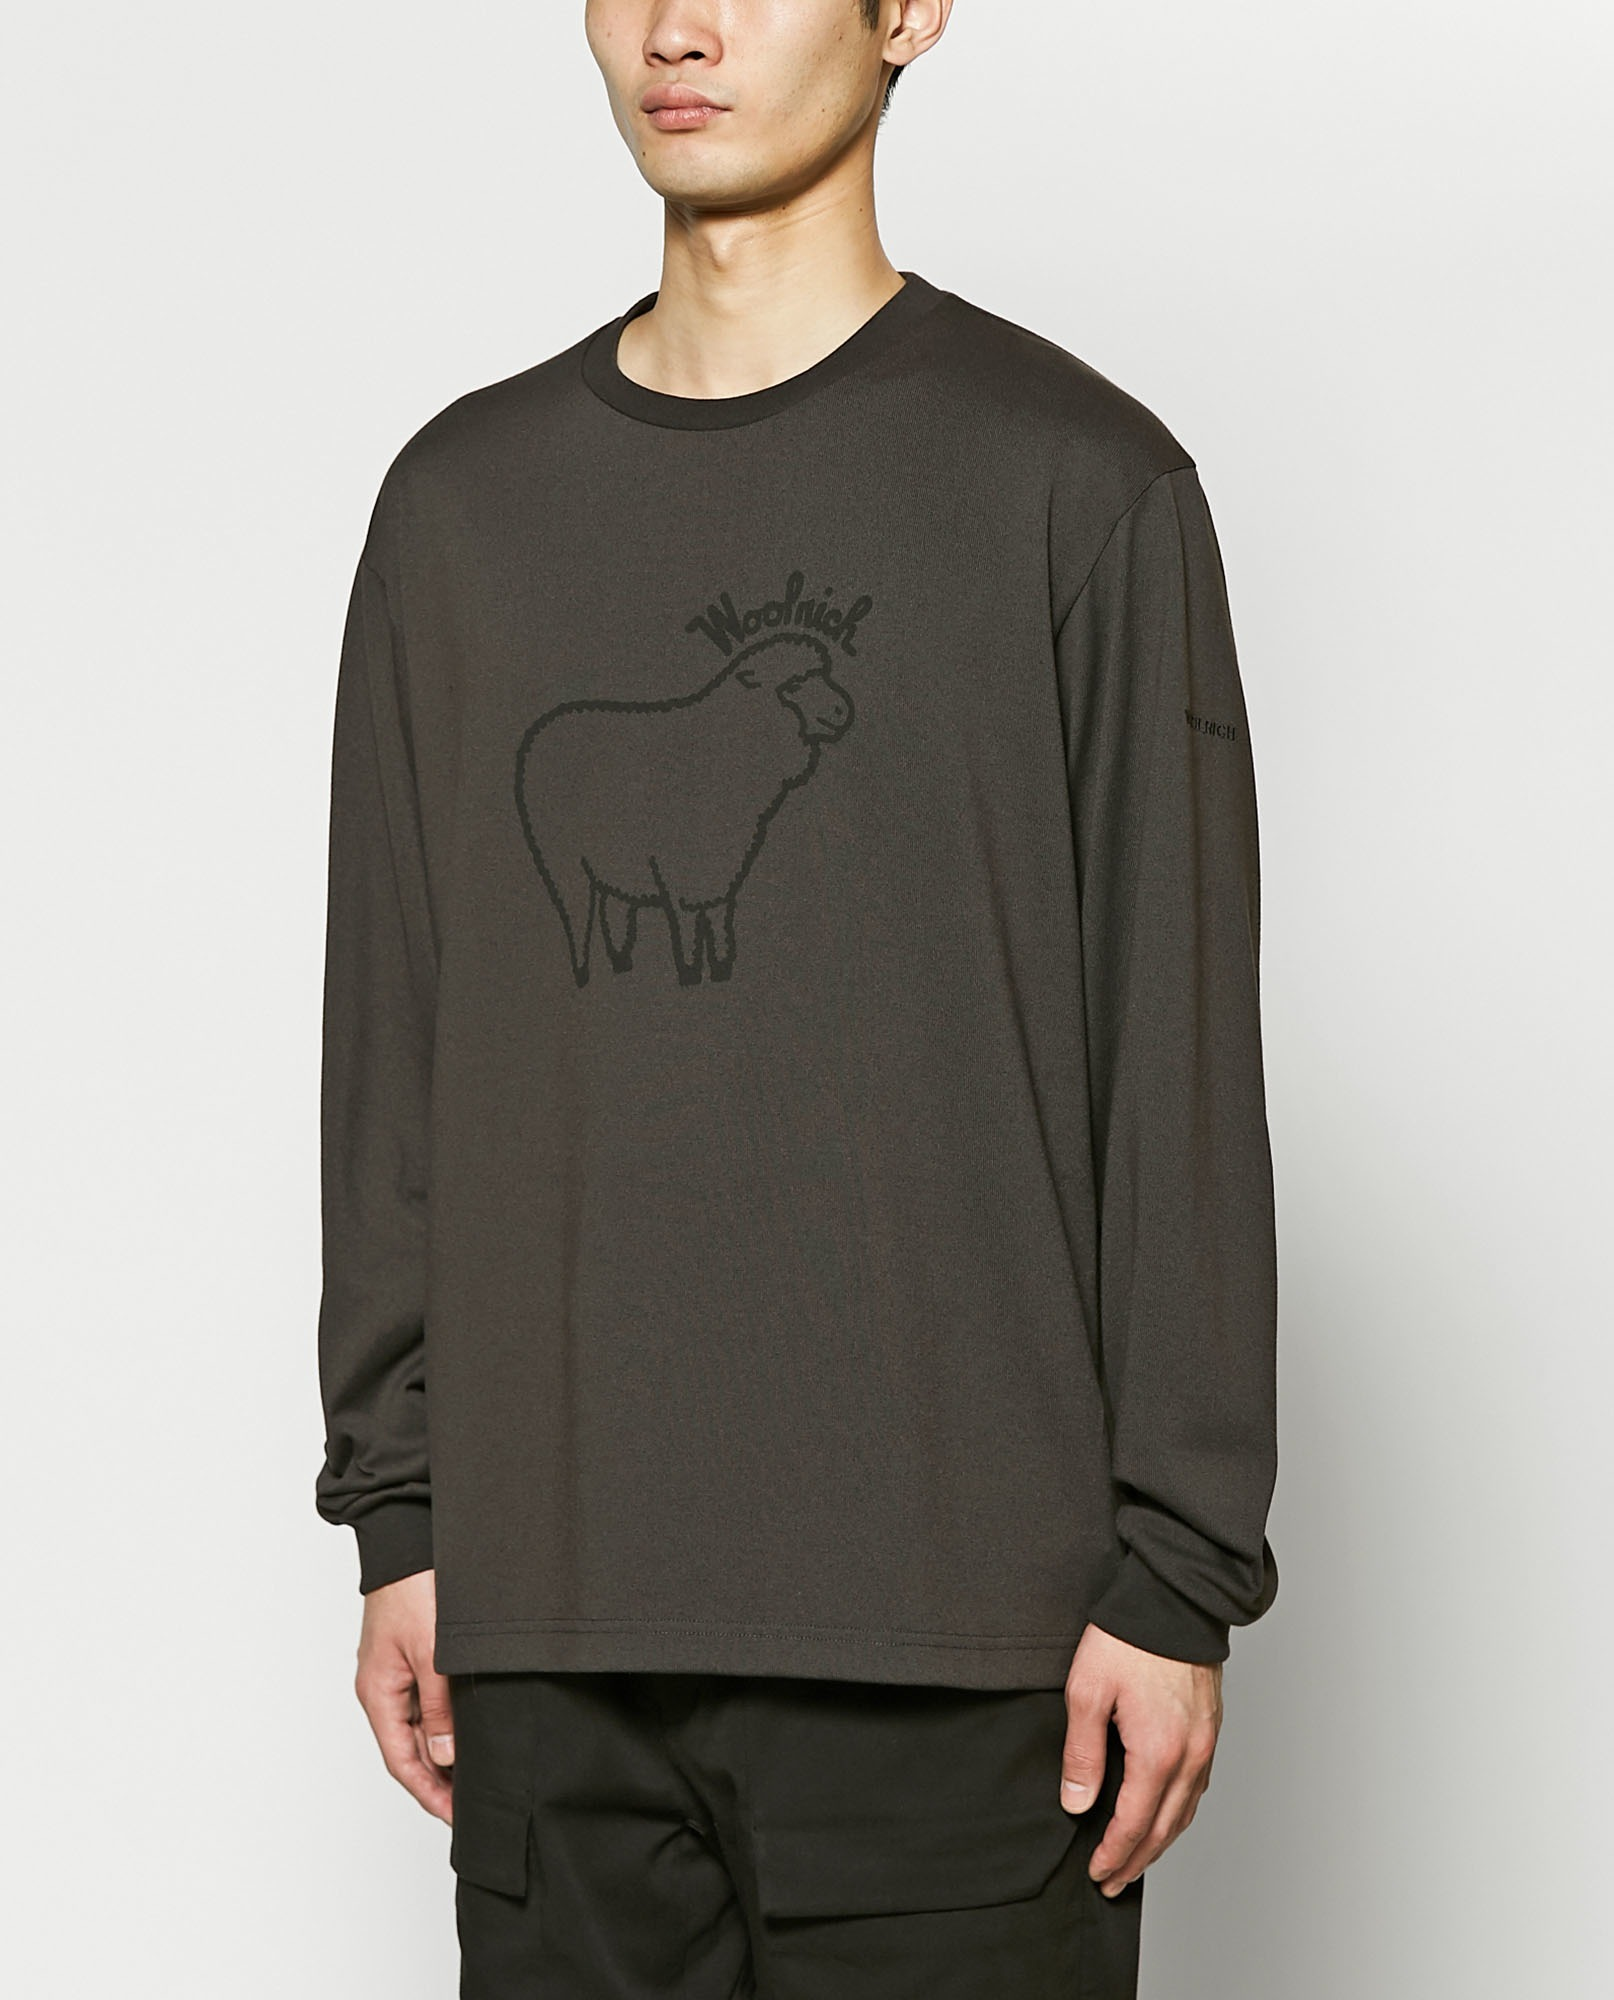 SHEEP LOGO L/S T-SHIRT